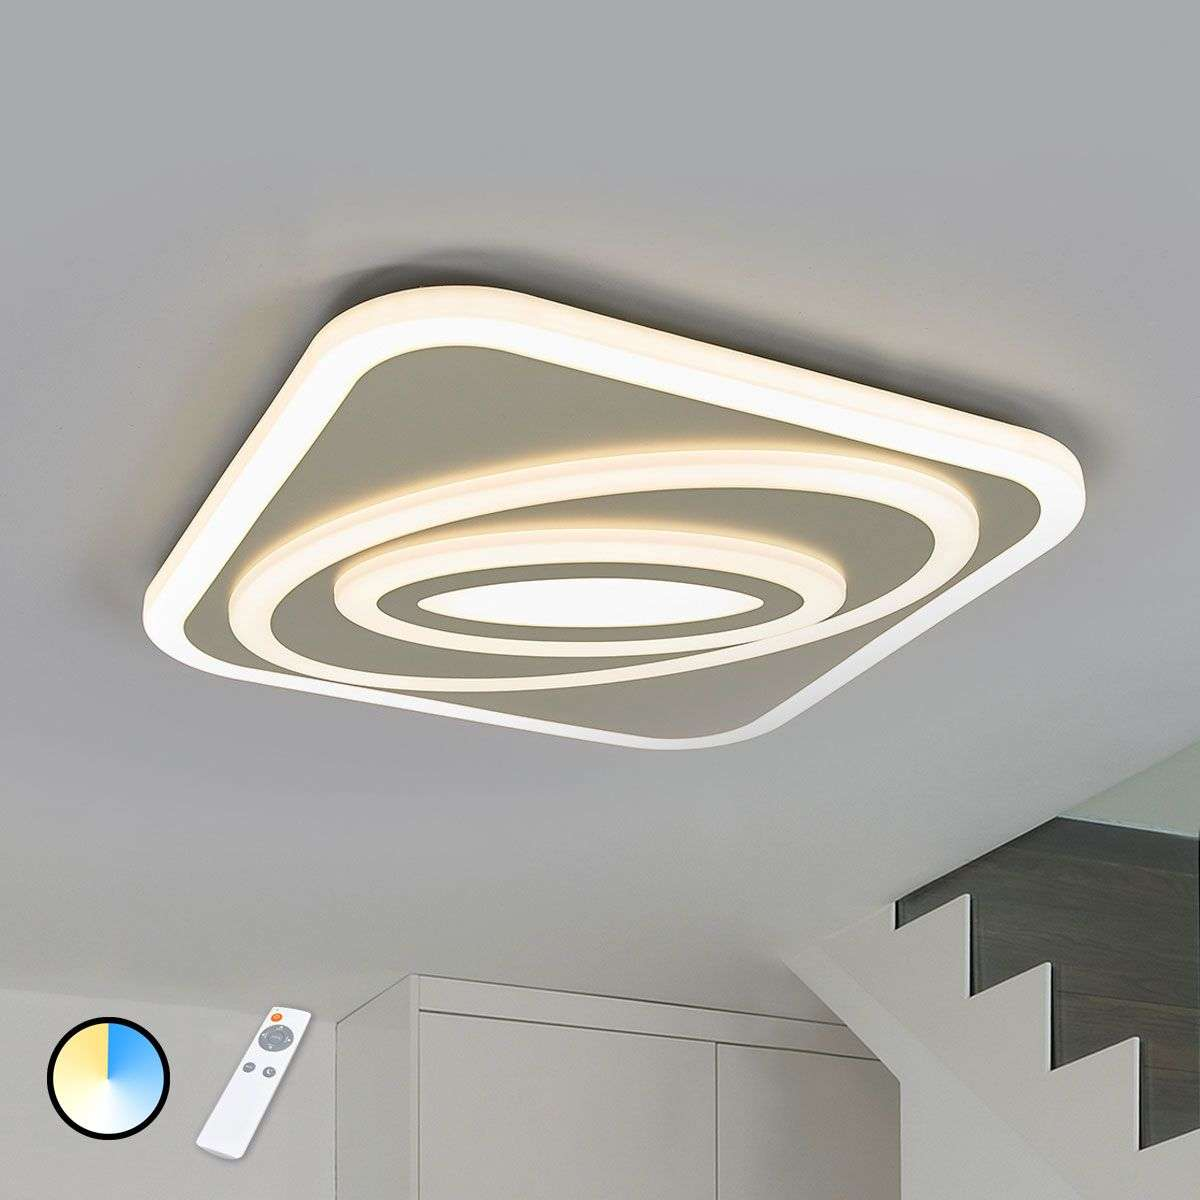 Magalie led ceiling lamp adjustable lights magalie led ceiling lamp adjustable 8032106 33 mozeypictures Image collections